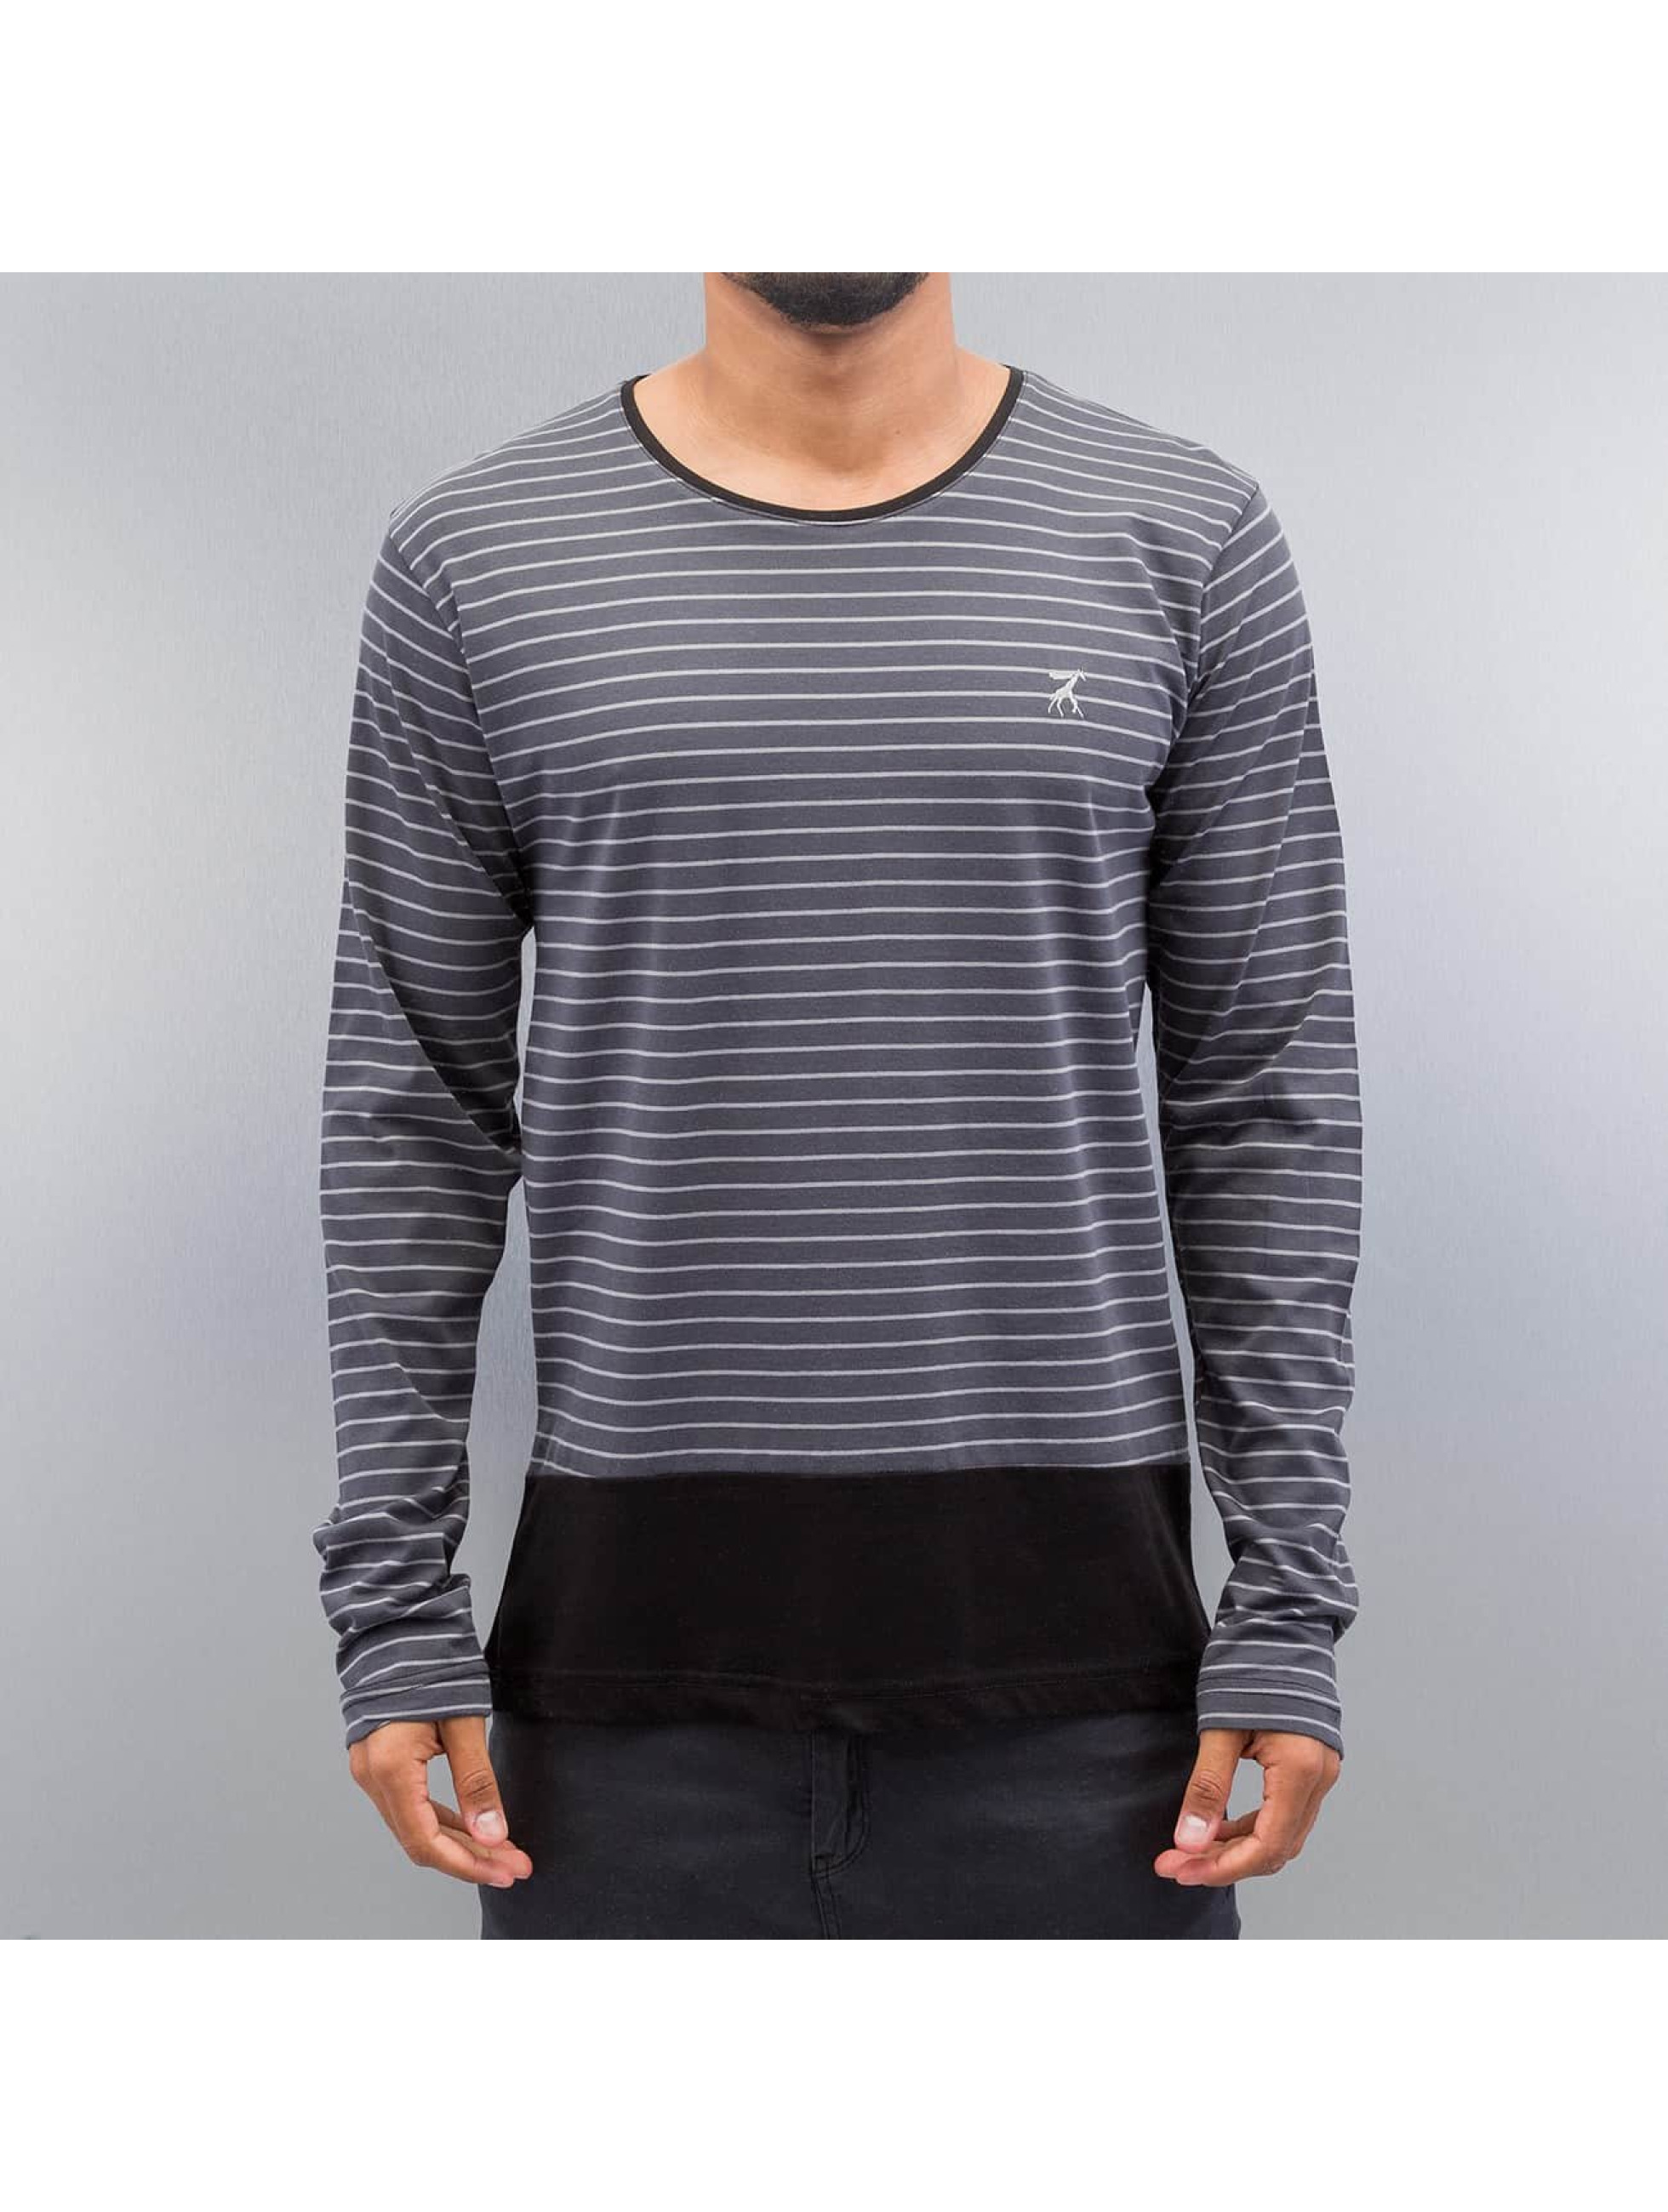 Cazzy Clang / Longsleeve Stripes in grey S